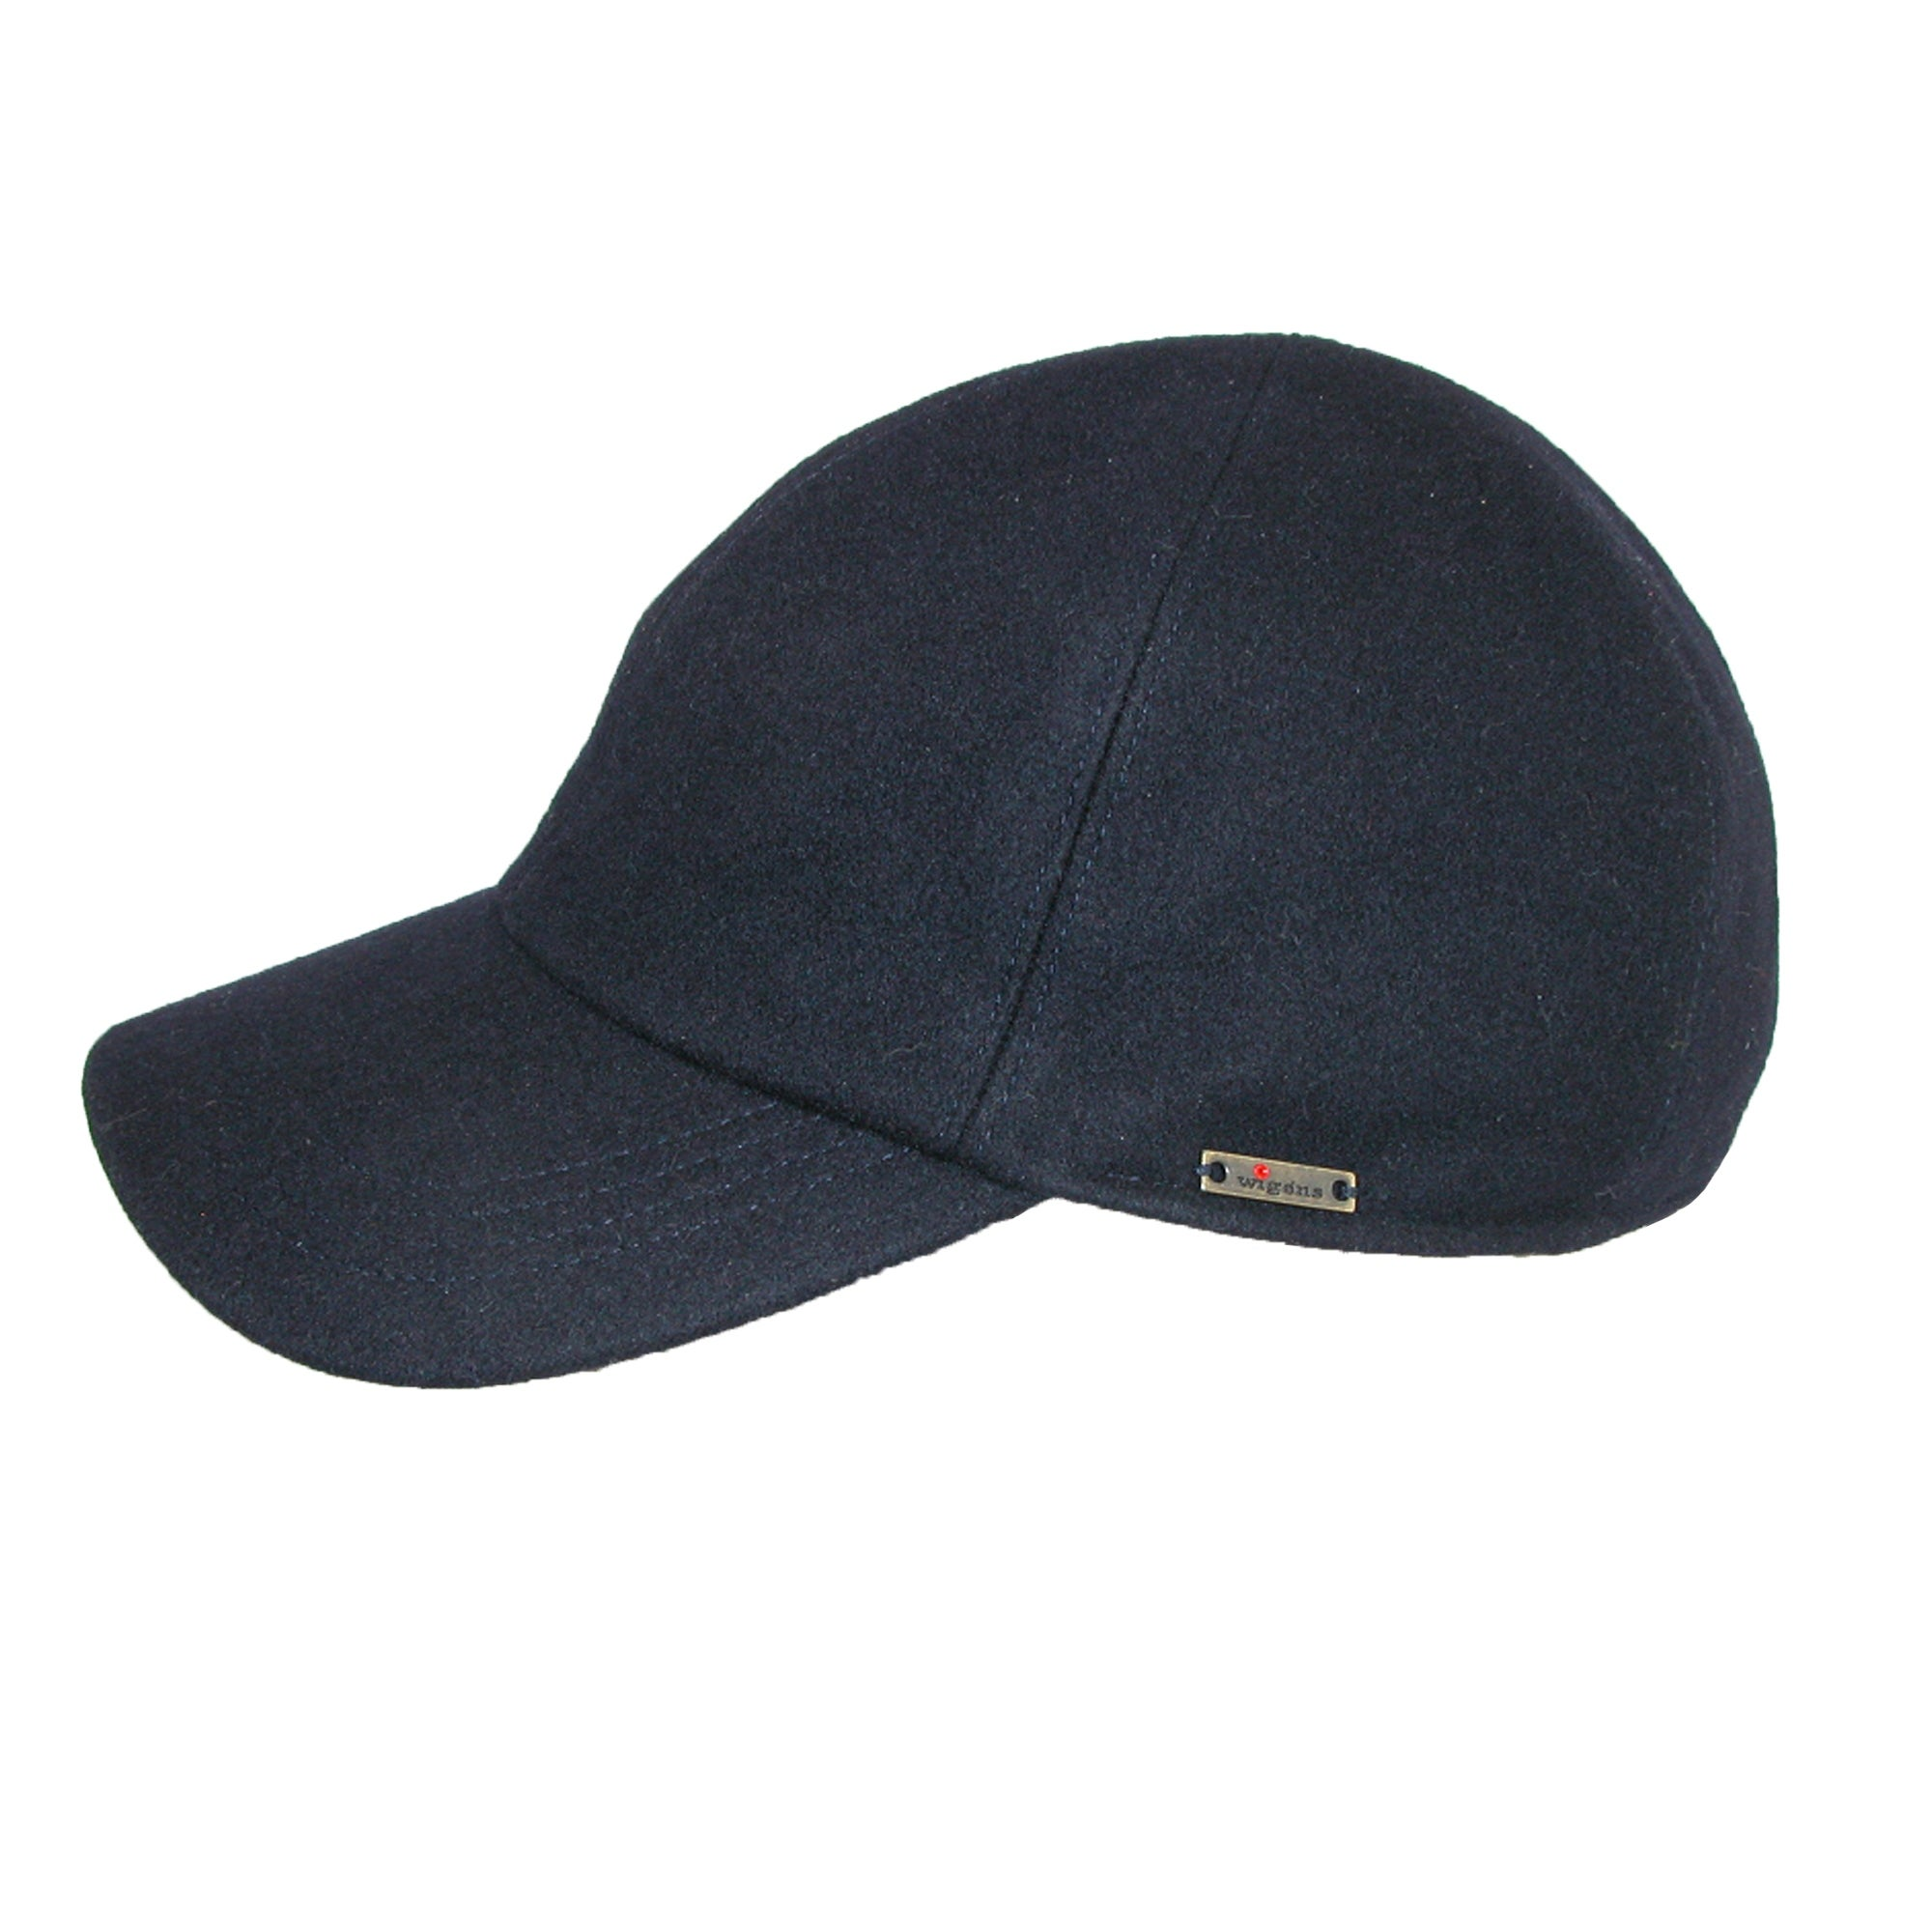 d3750fa502fe3 Shop Wigens Men s Wool Baseball Cap with Earflaps - Free Shipping Today -  Overstock - 14278780